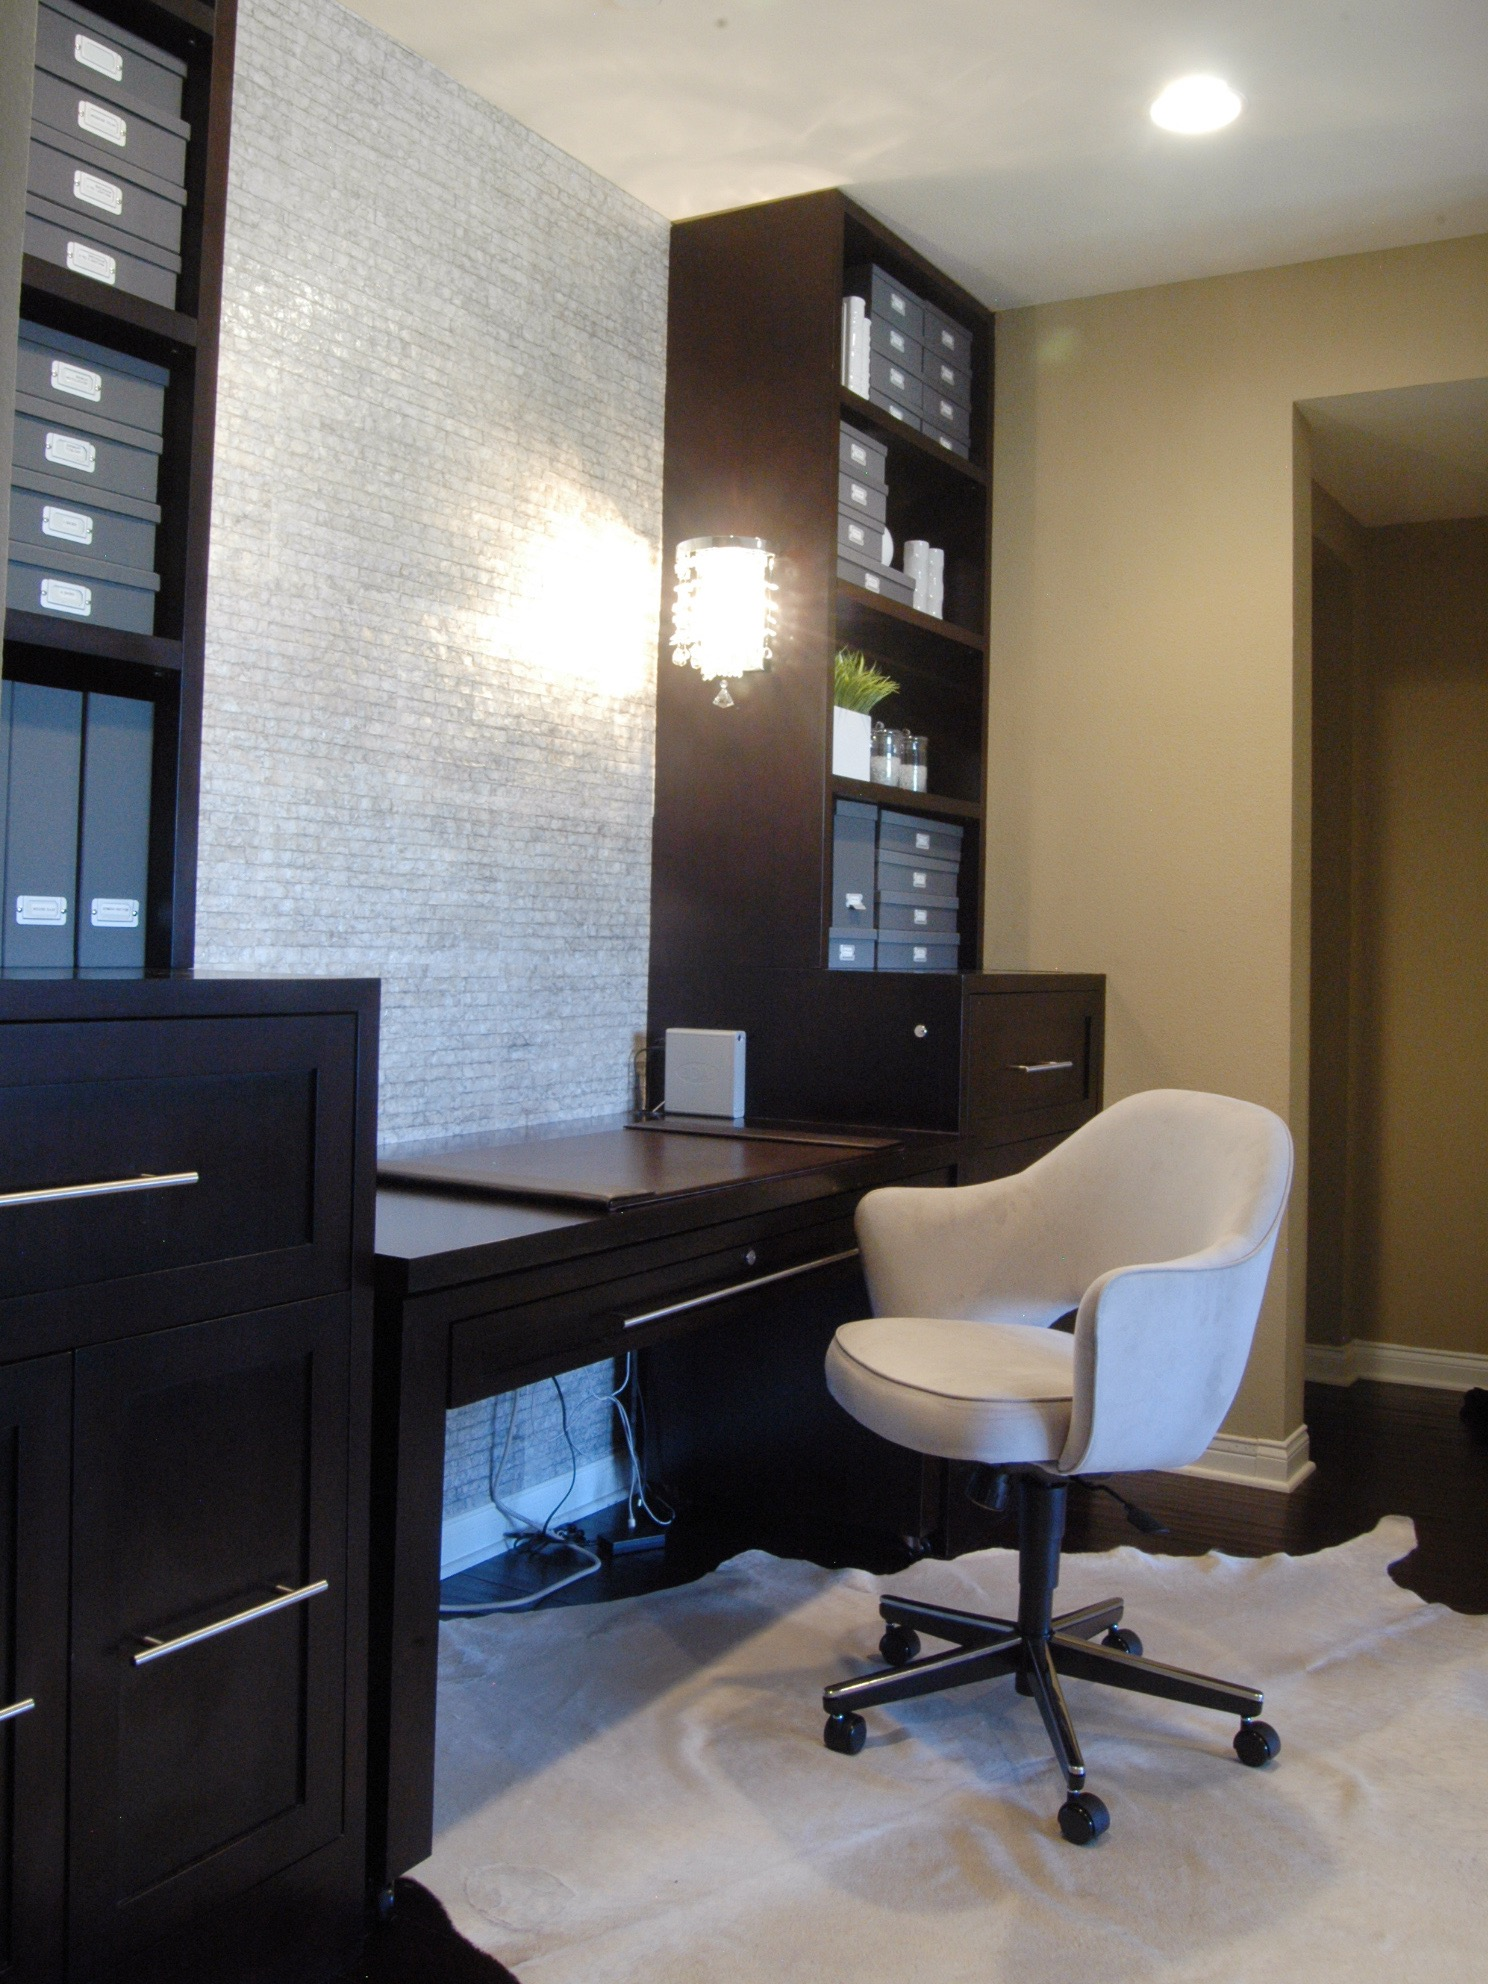 Black And White Home Office With Pearlized Tile Wall (Image 3 of 50)